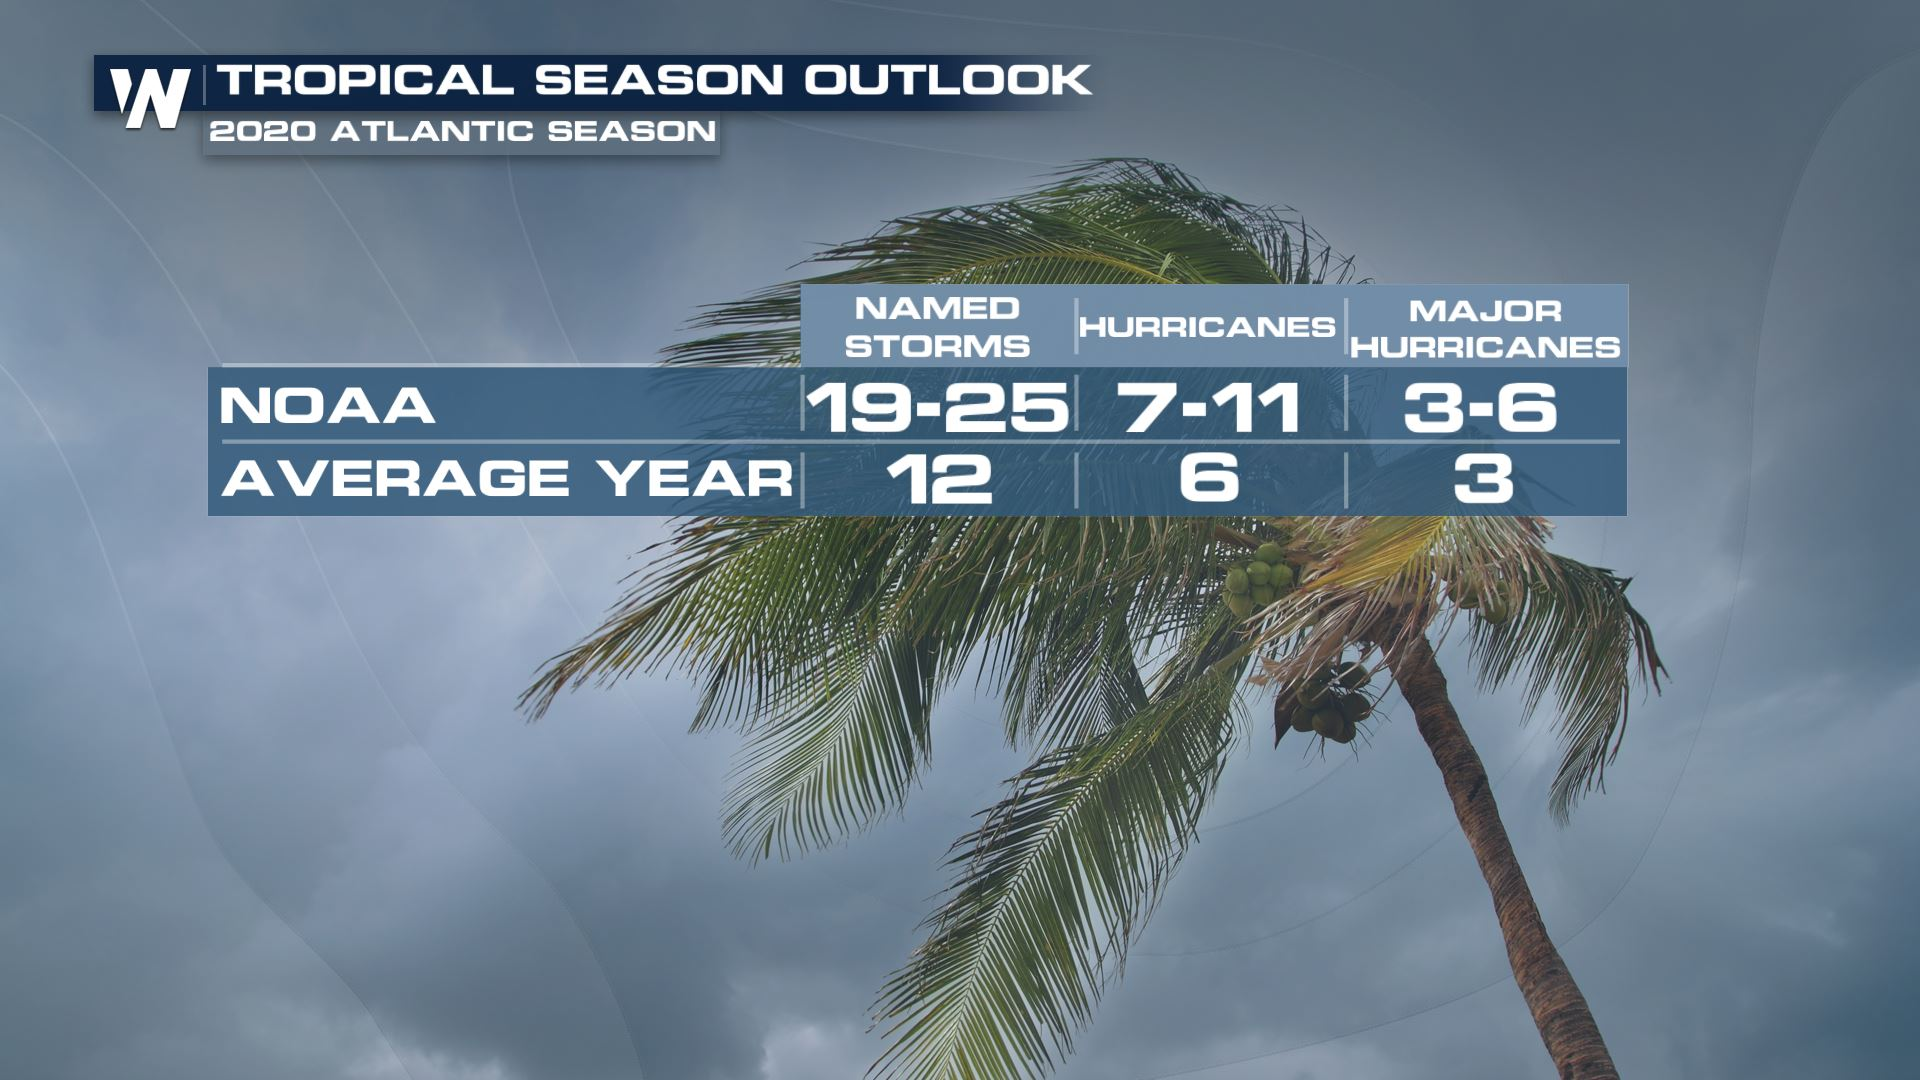 NOAA Increases Hurricane Season Forecast